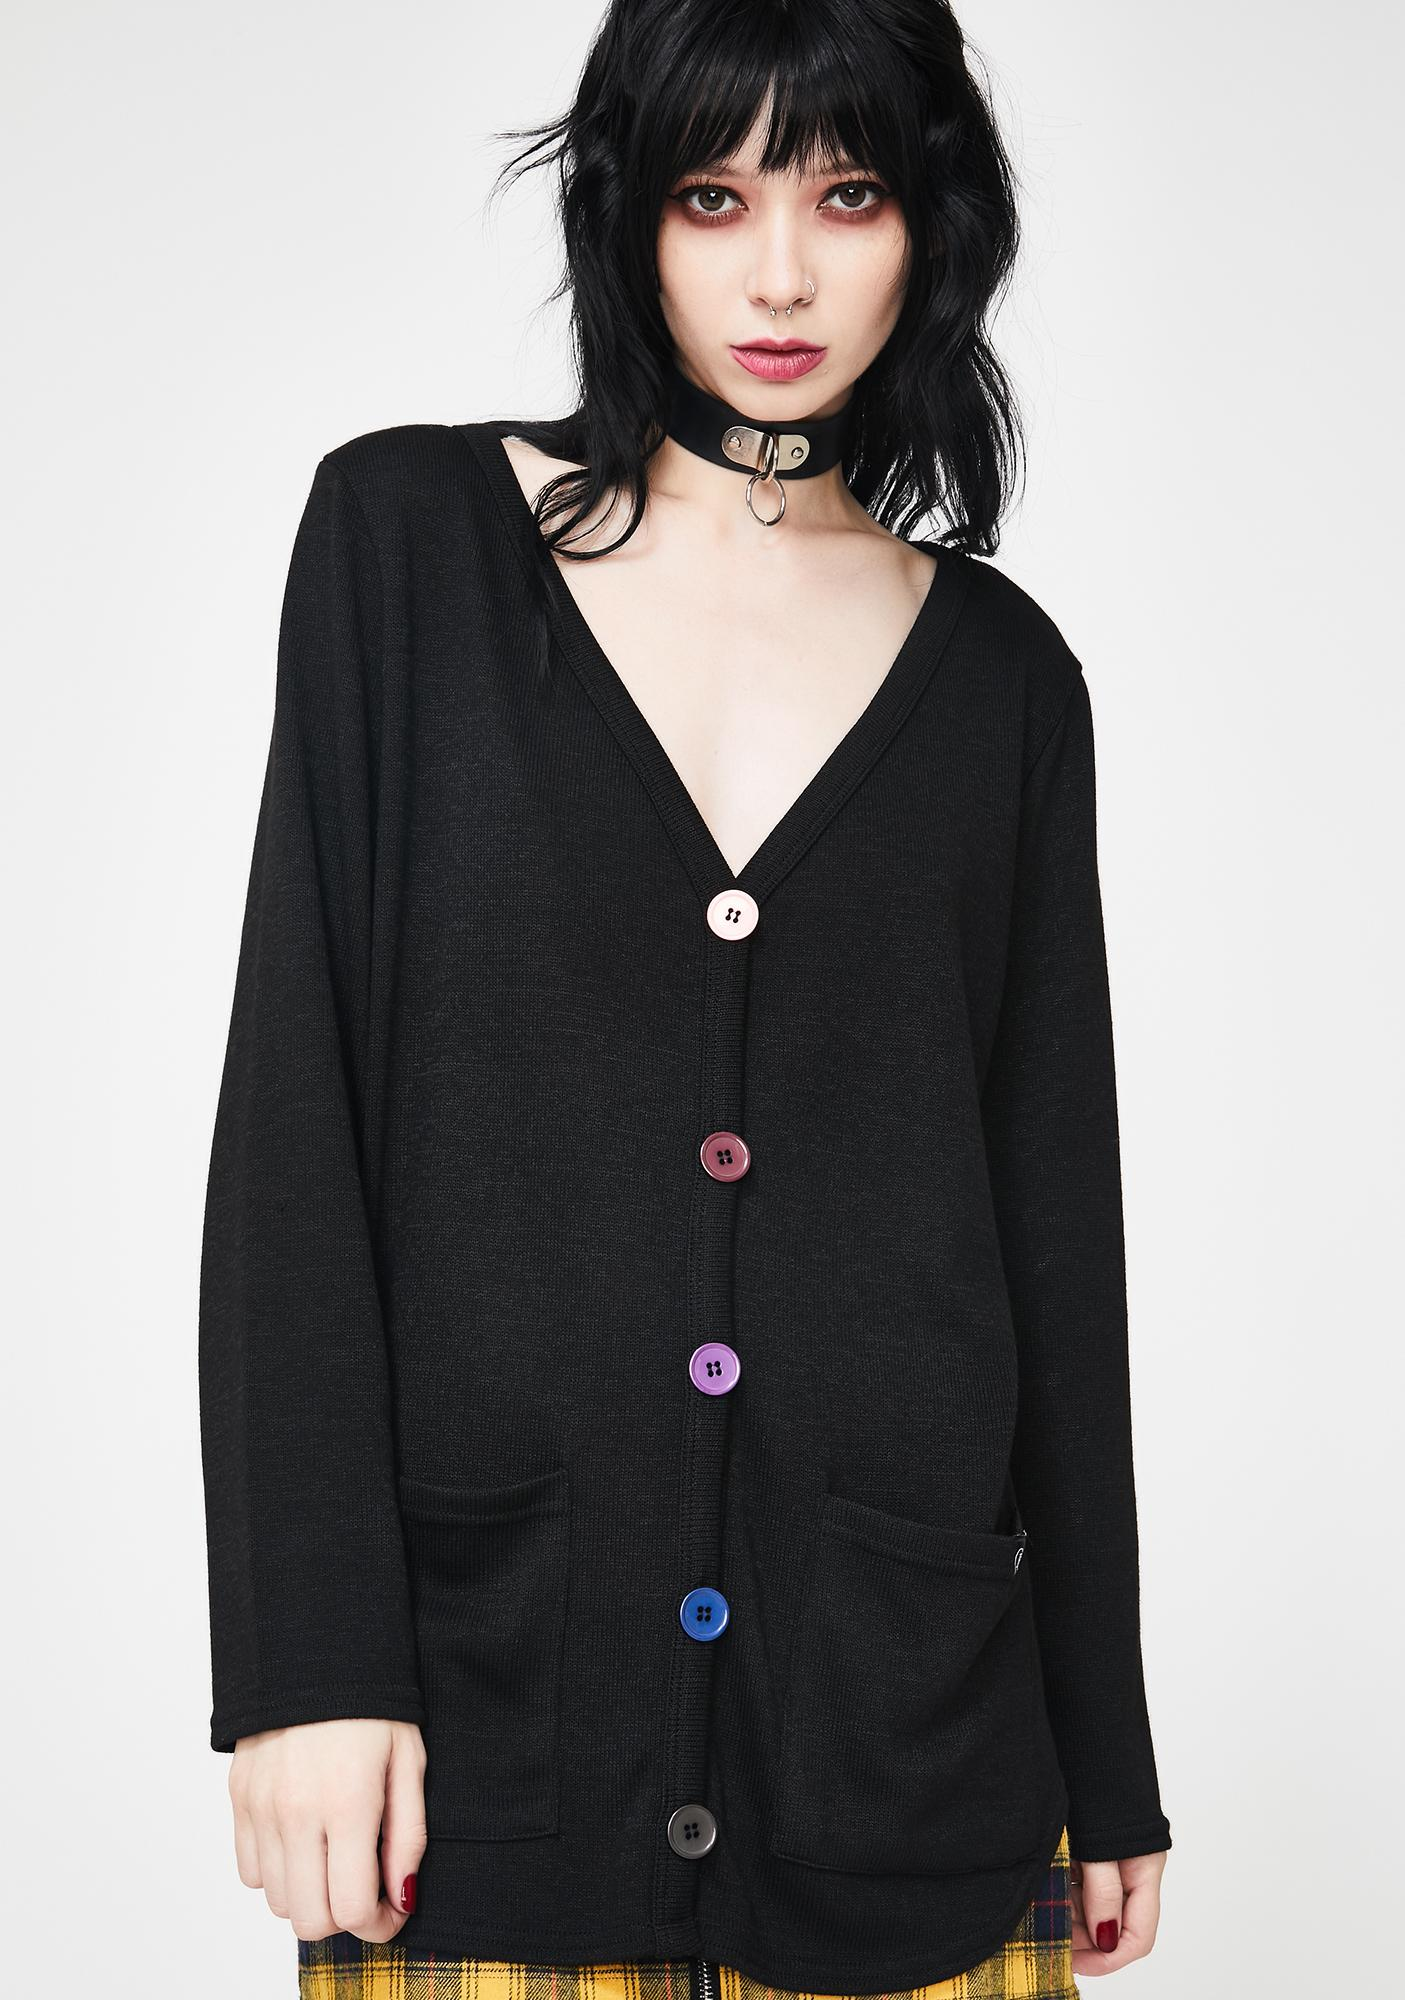 Fearless Illustration Rain Cloud Button Up Cardigan